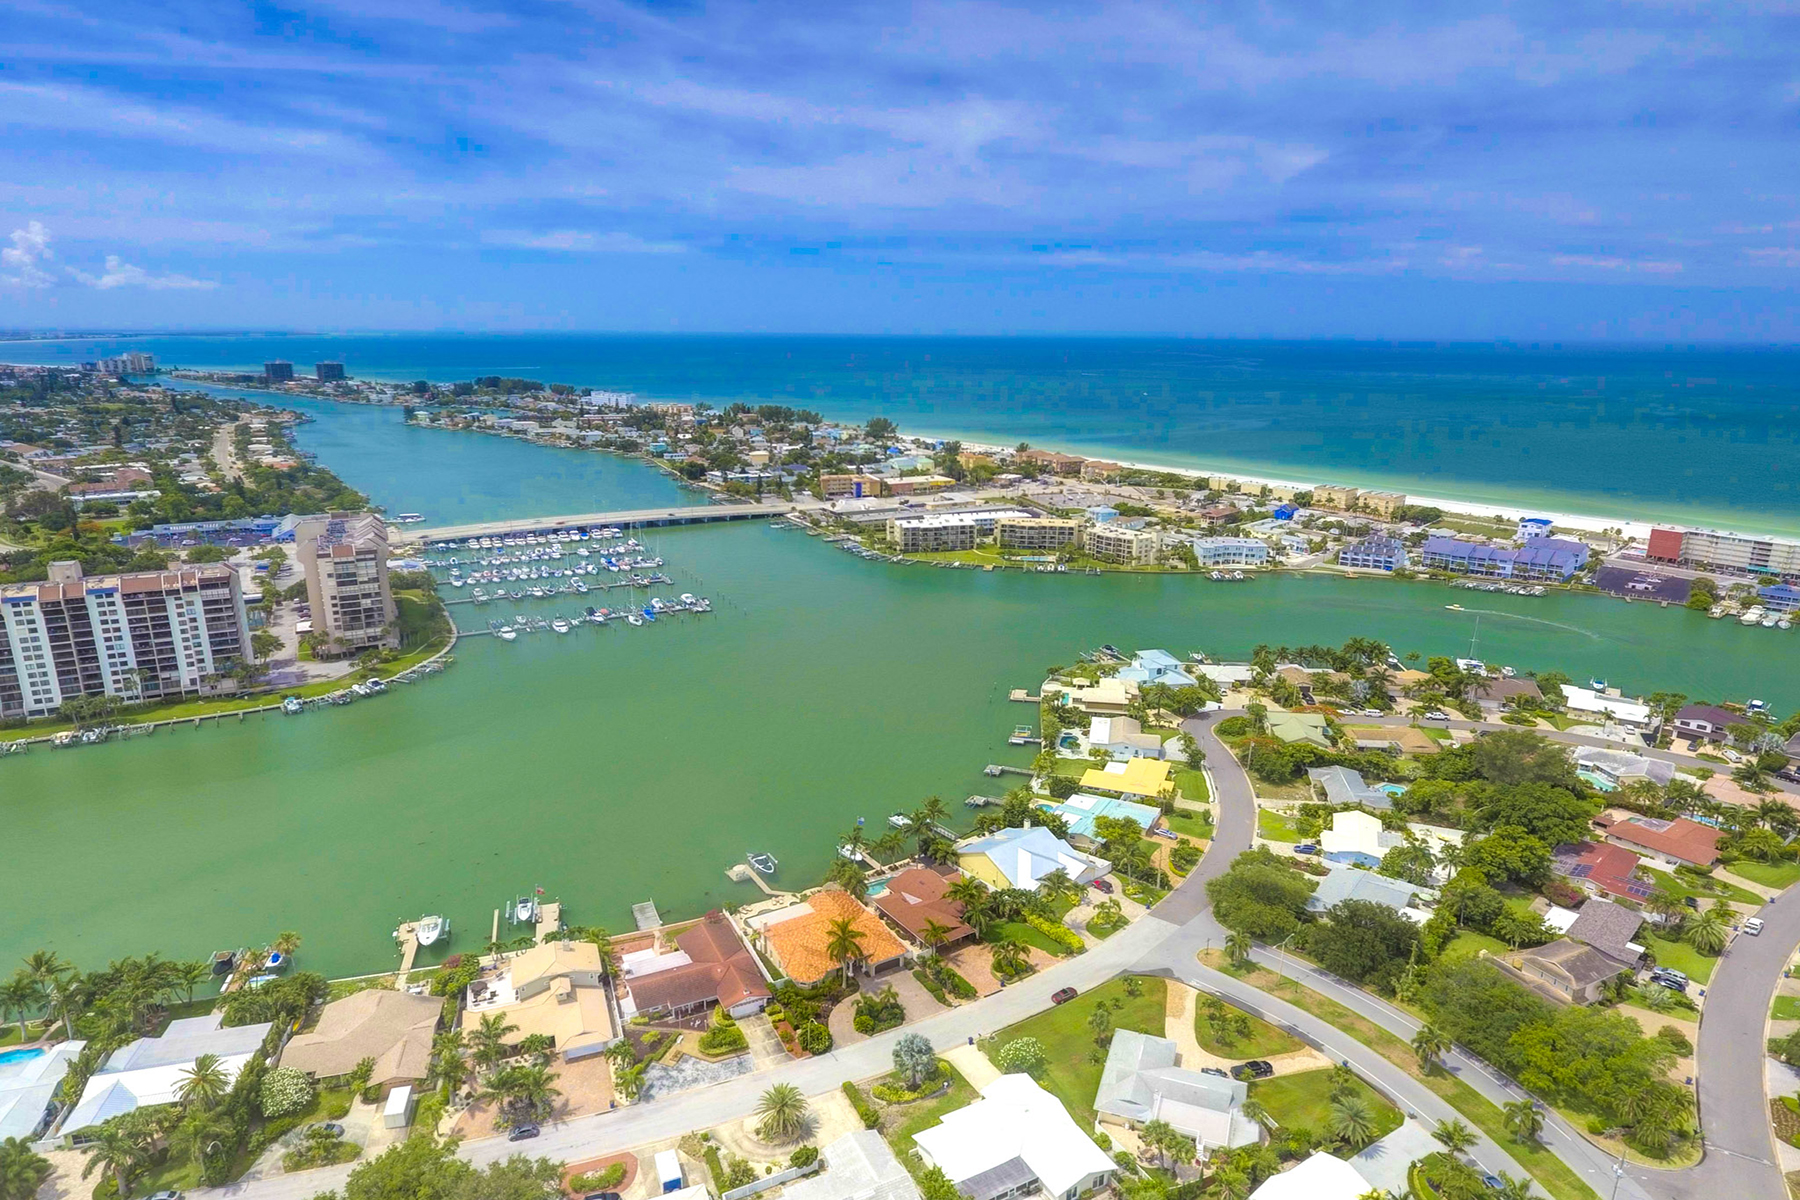 Additional photo for property listing at 3 Bellevue Dr Treasure Island, Florida 33706 United States